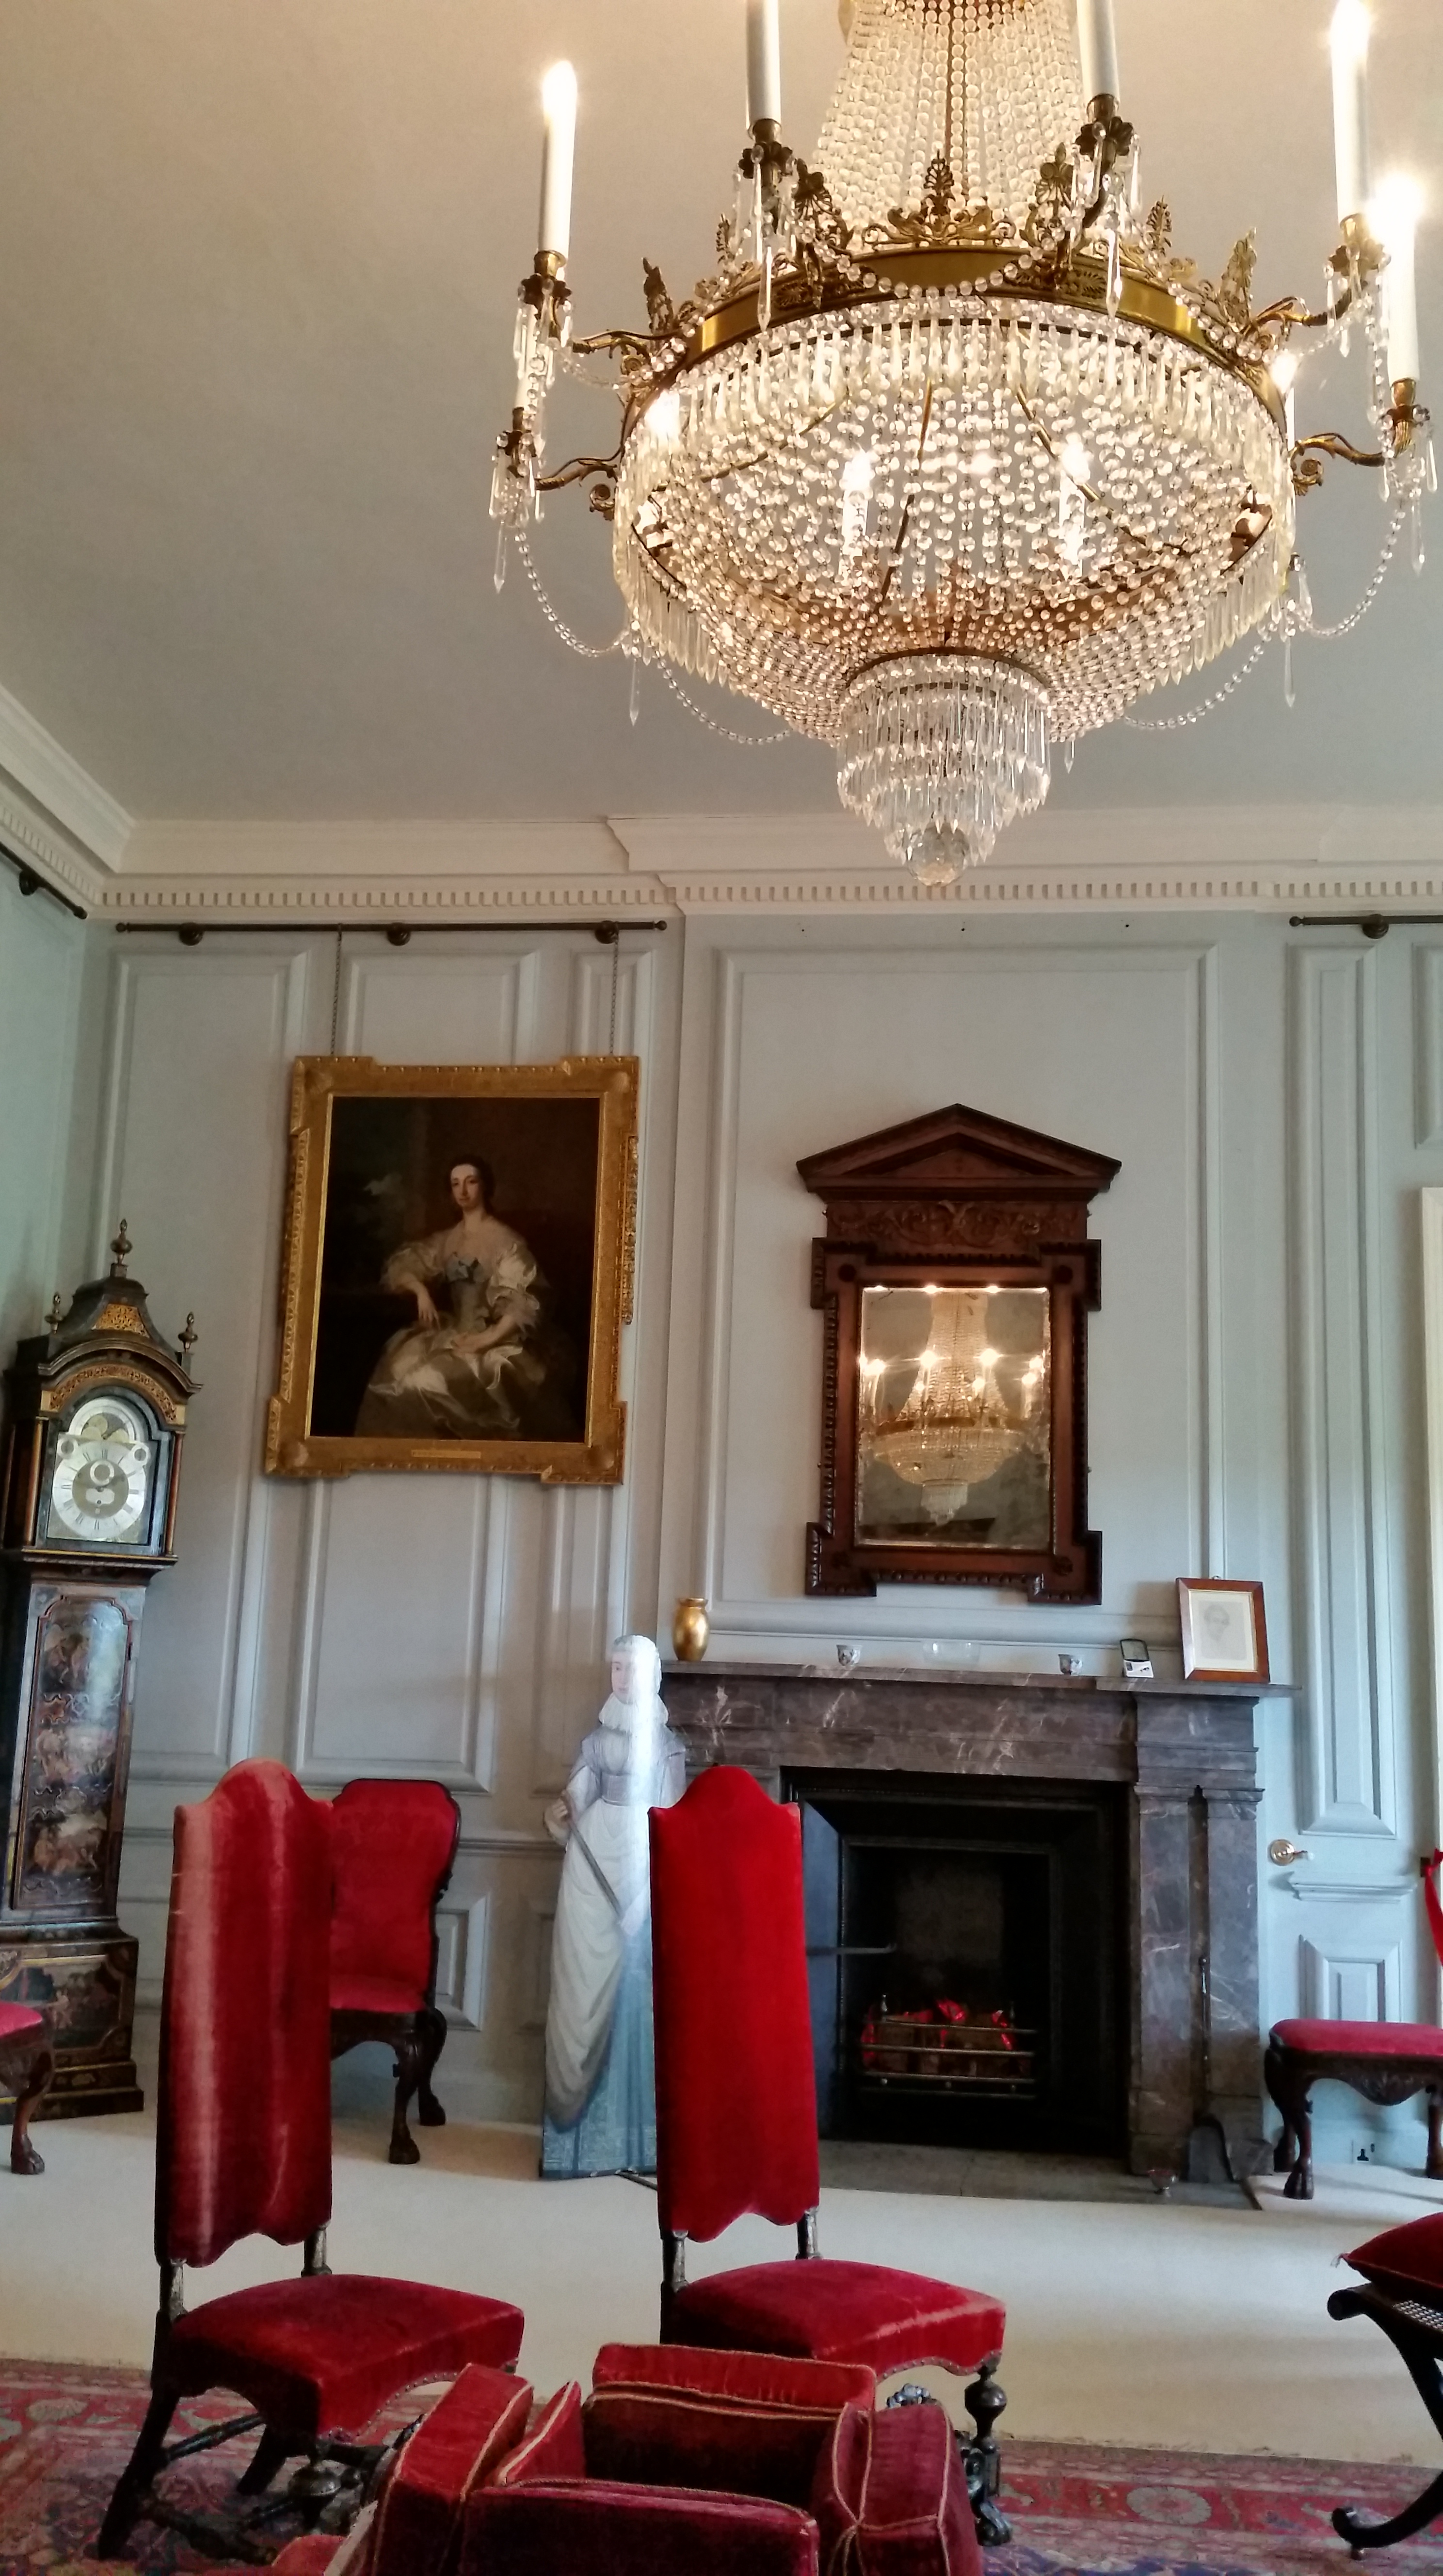 Admired so much by Jane Austen's mother - interior at Stoneleigh Abbey.jpg